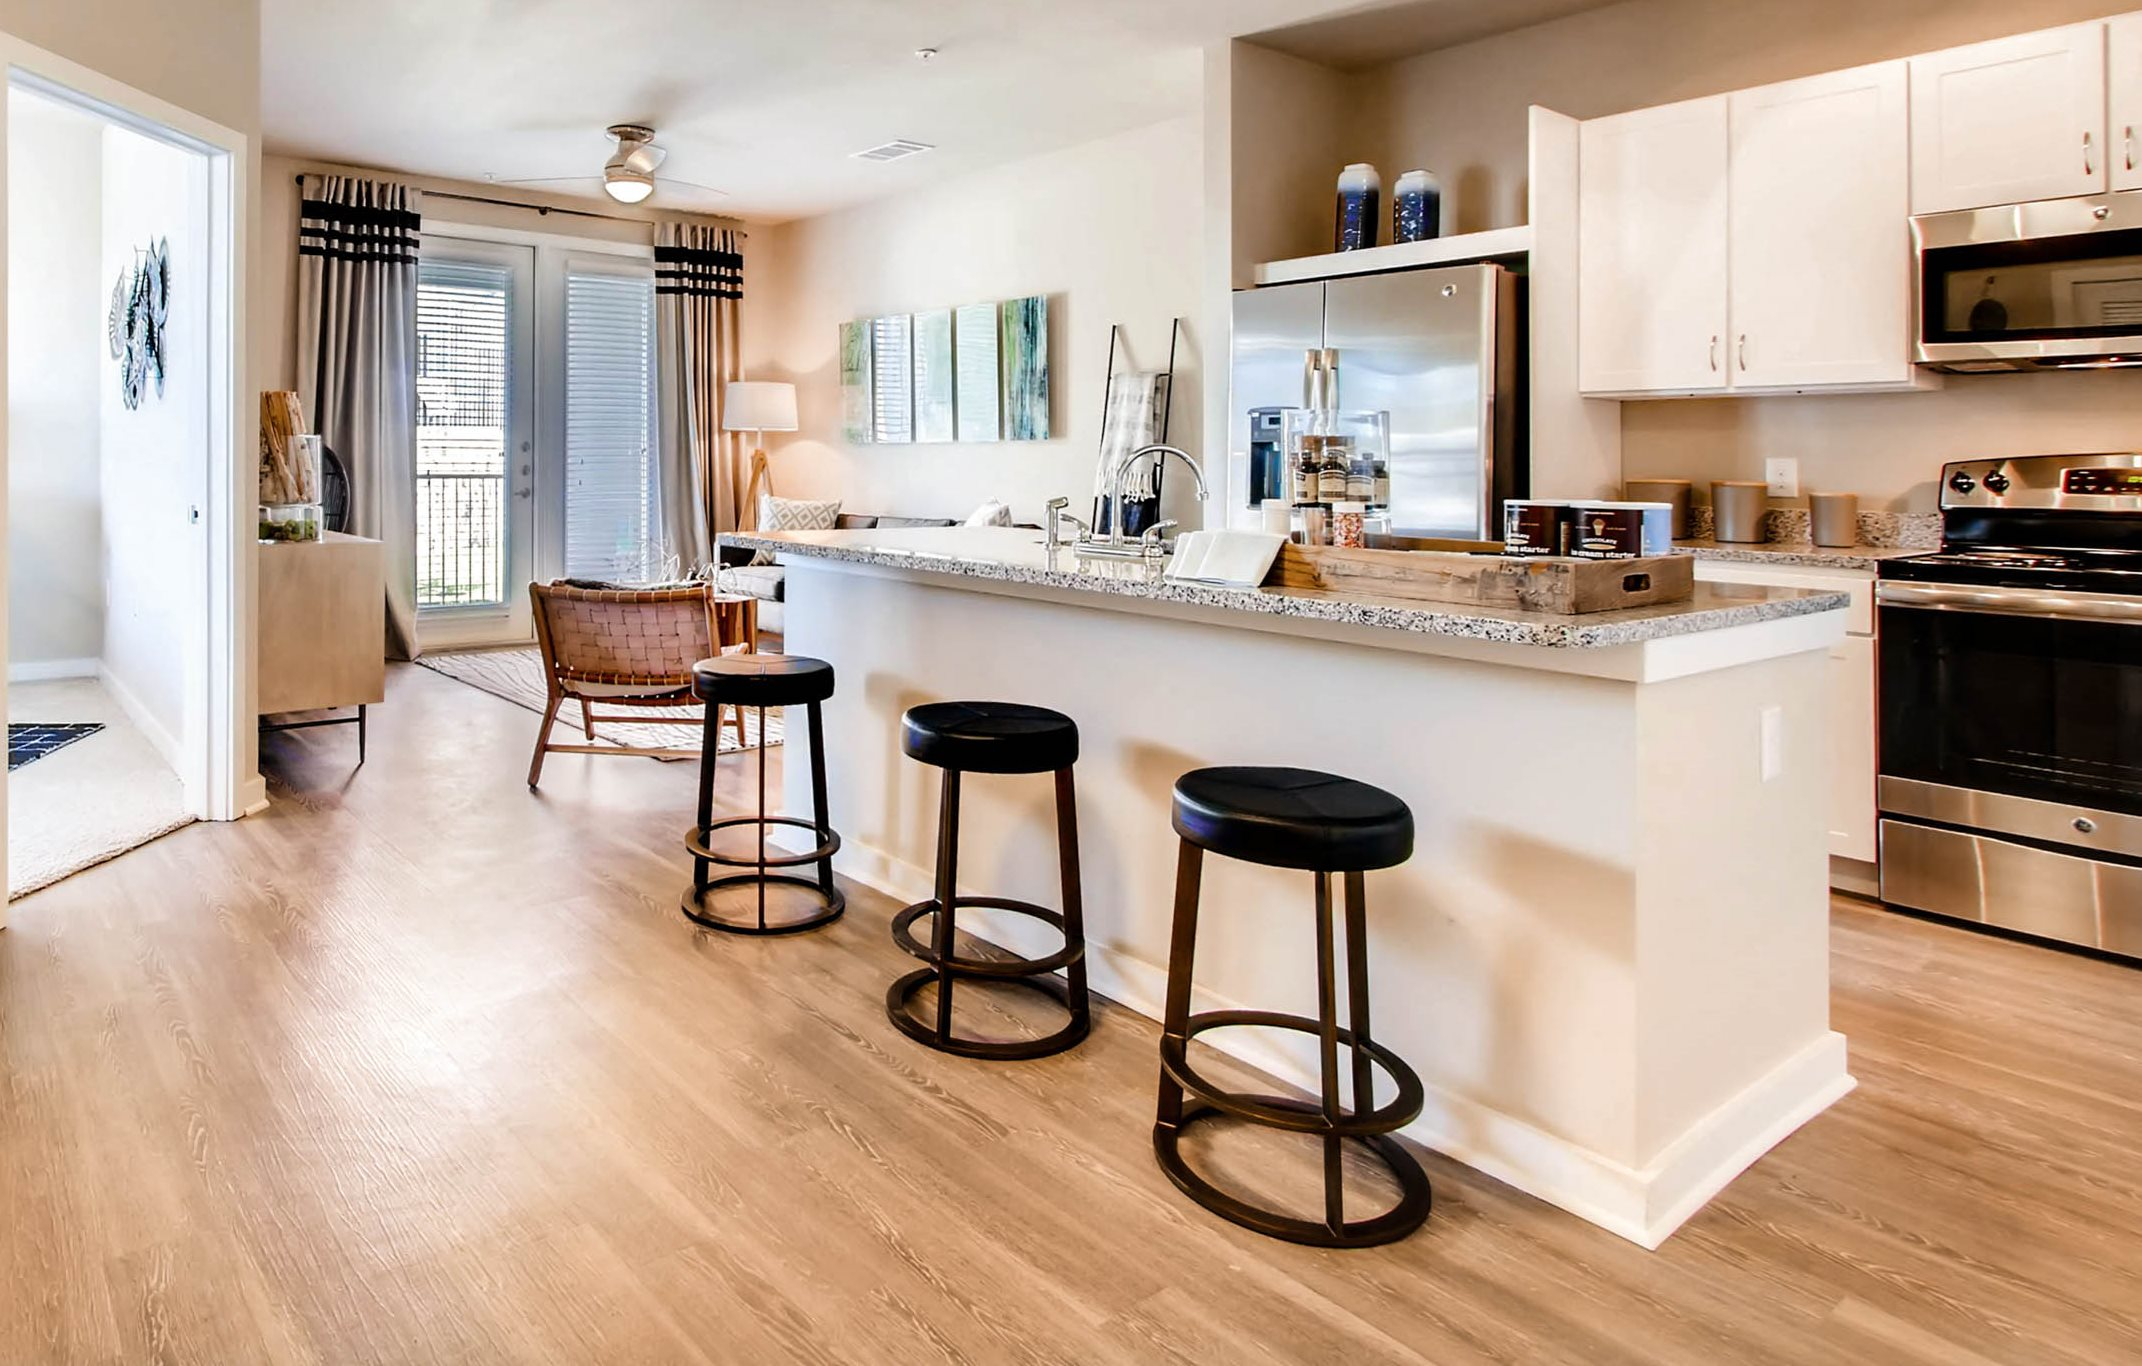 wood-style flooring in apts in kylt tx